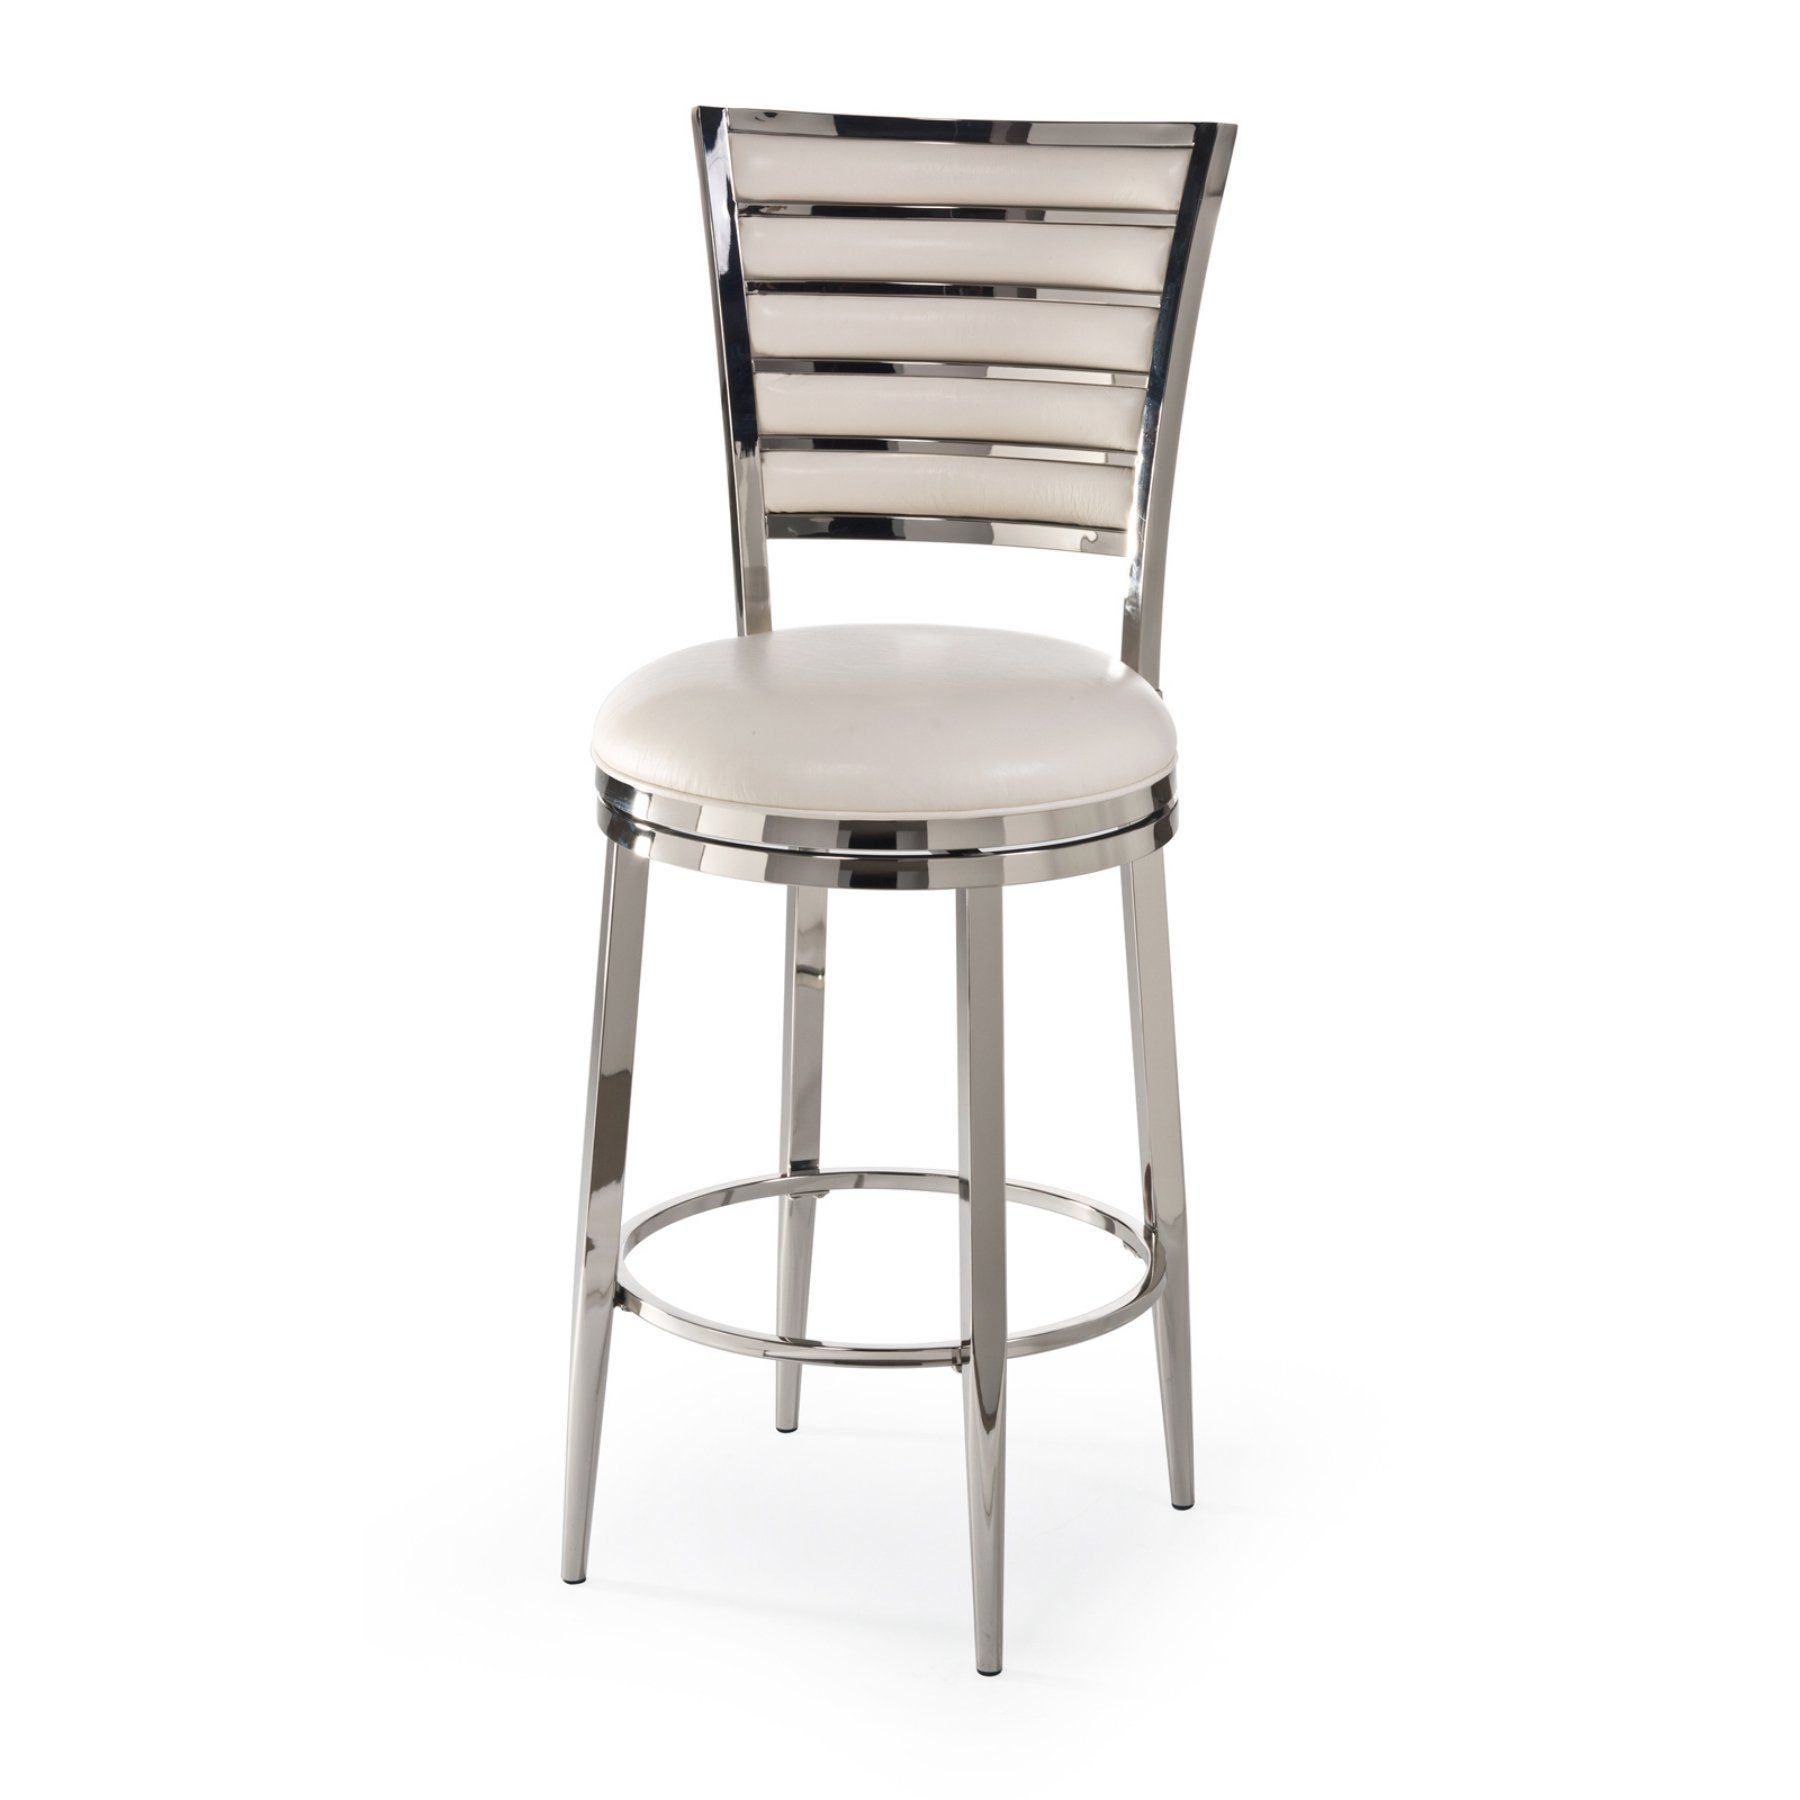 Hillsdale Rouen Swivel Bar Stool Shiny Nickel Bar